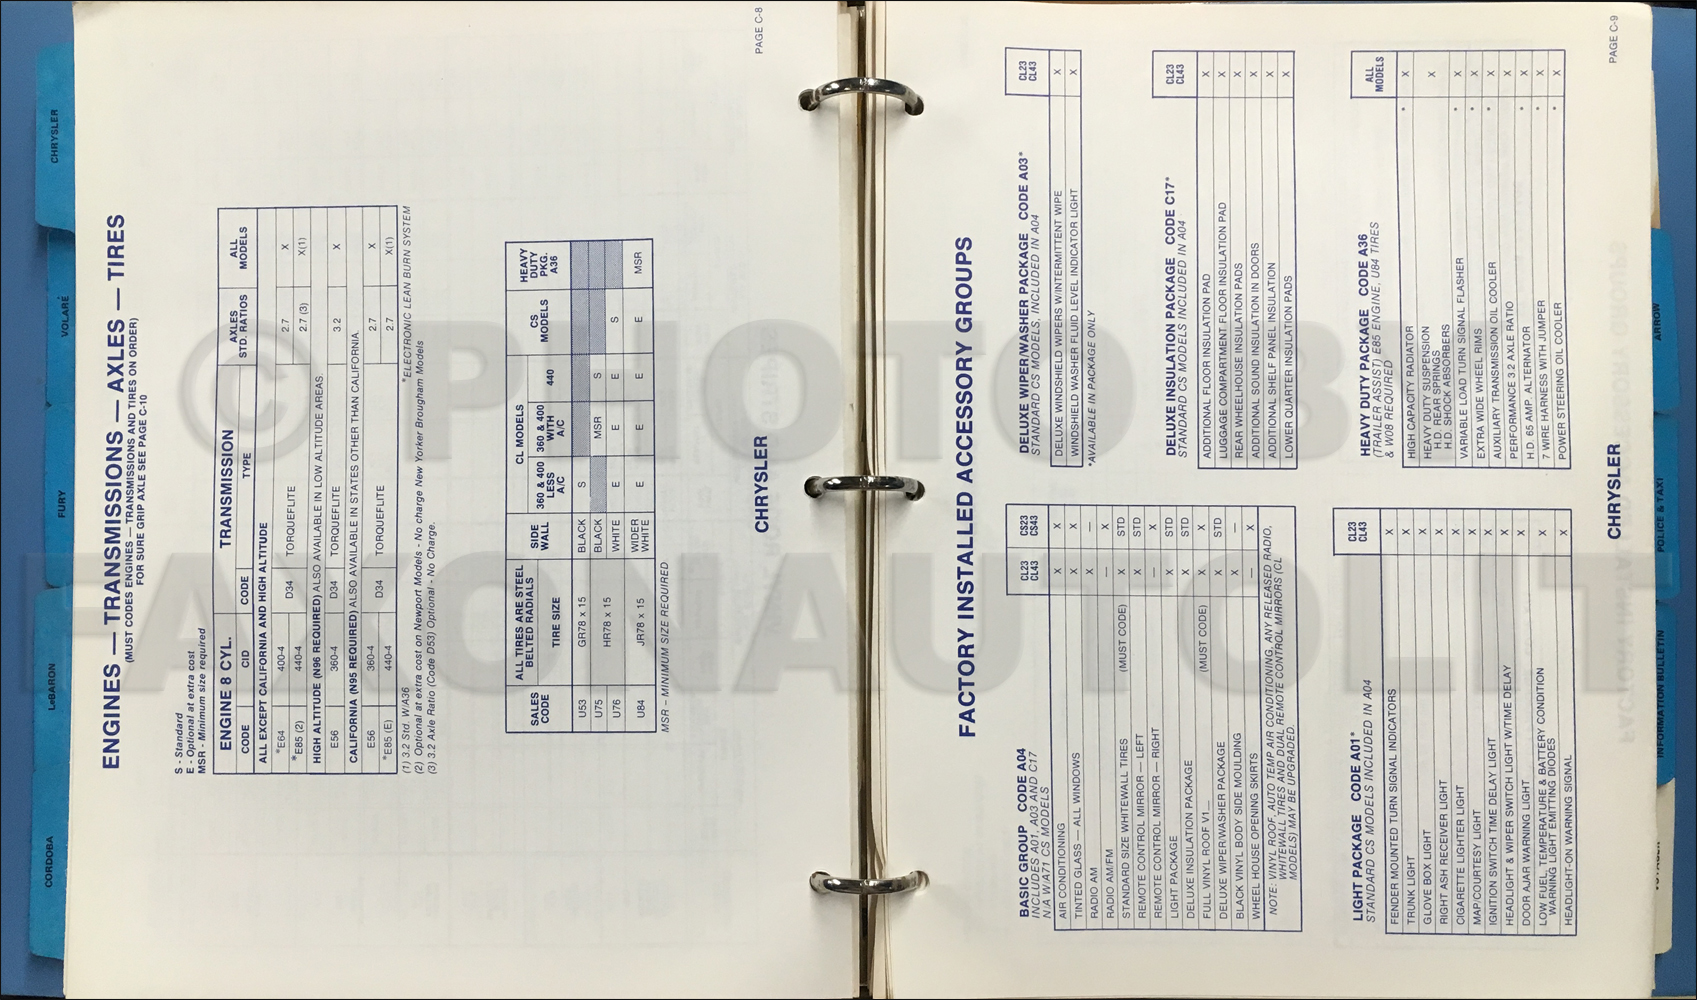 1978 Chrysler Plymouth Ordering Code Guide Original